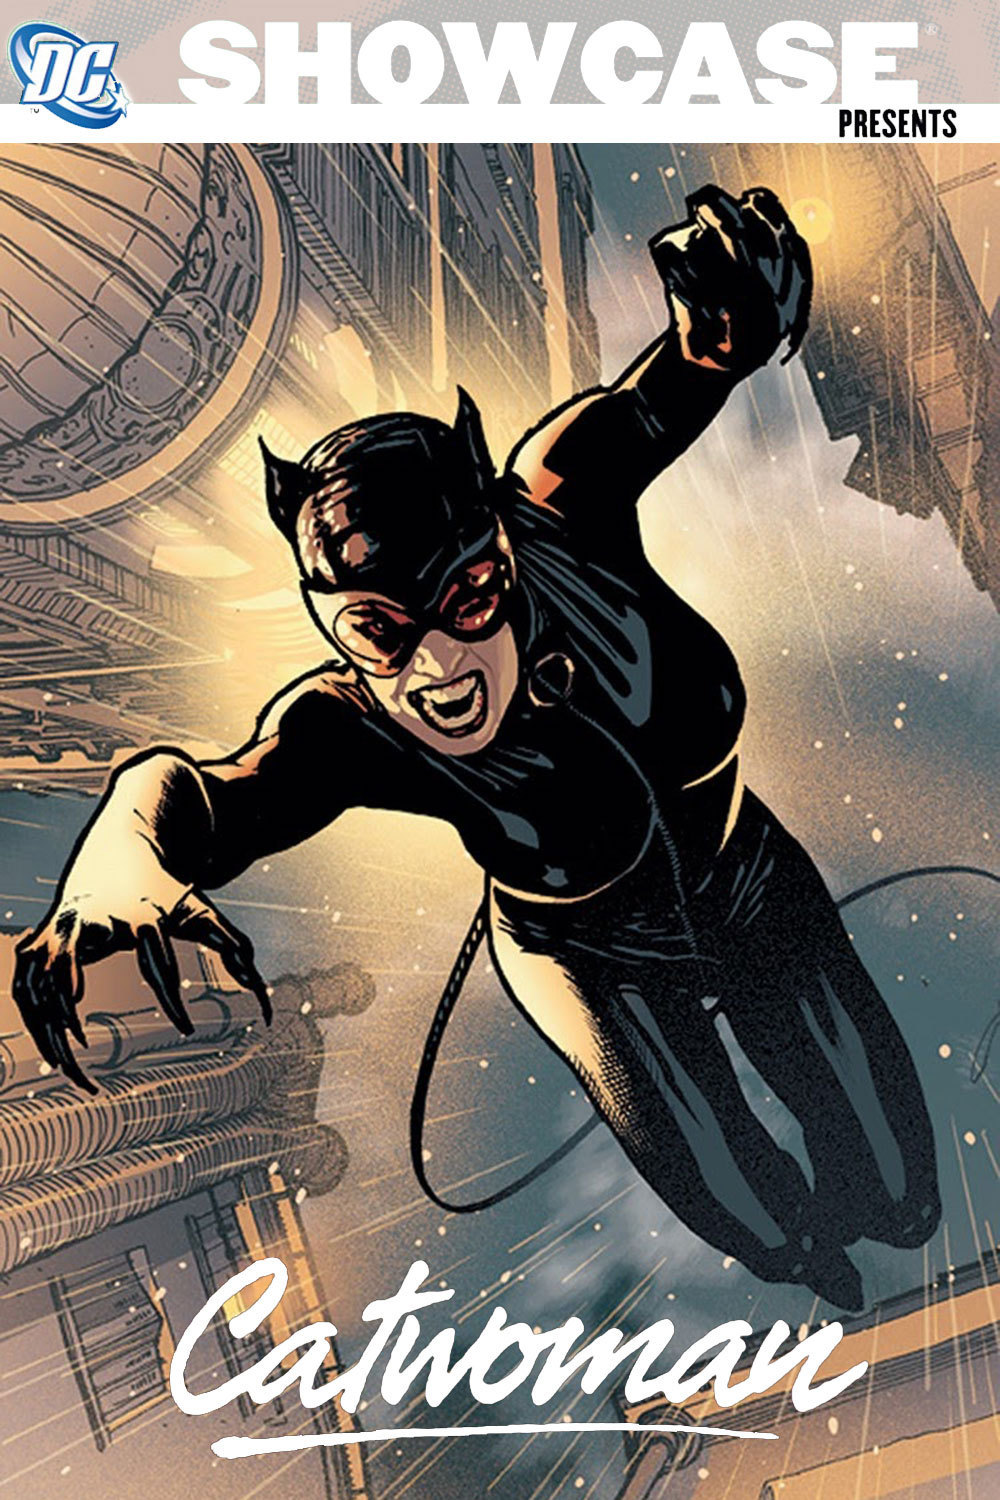 Dc Showcase: Catwoman